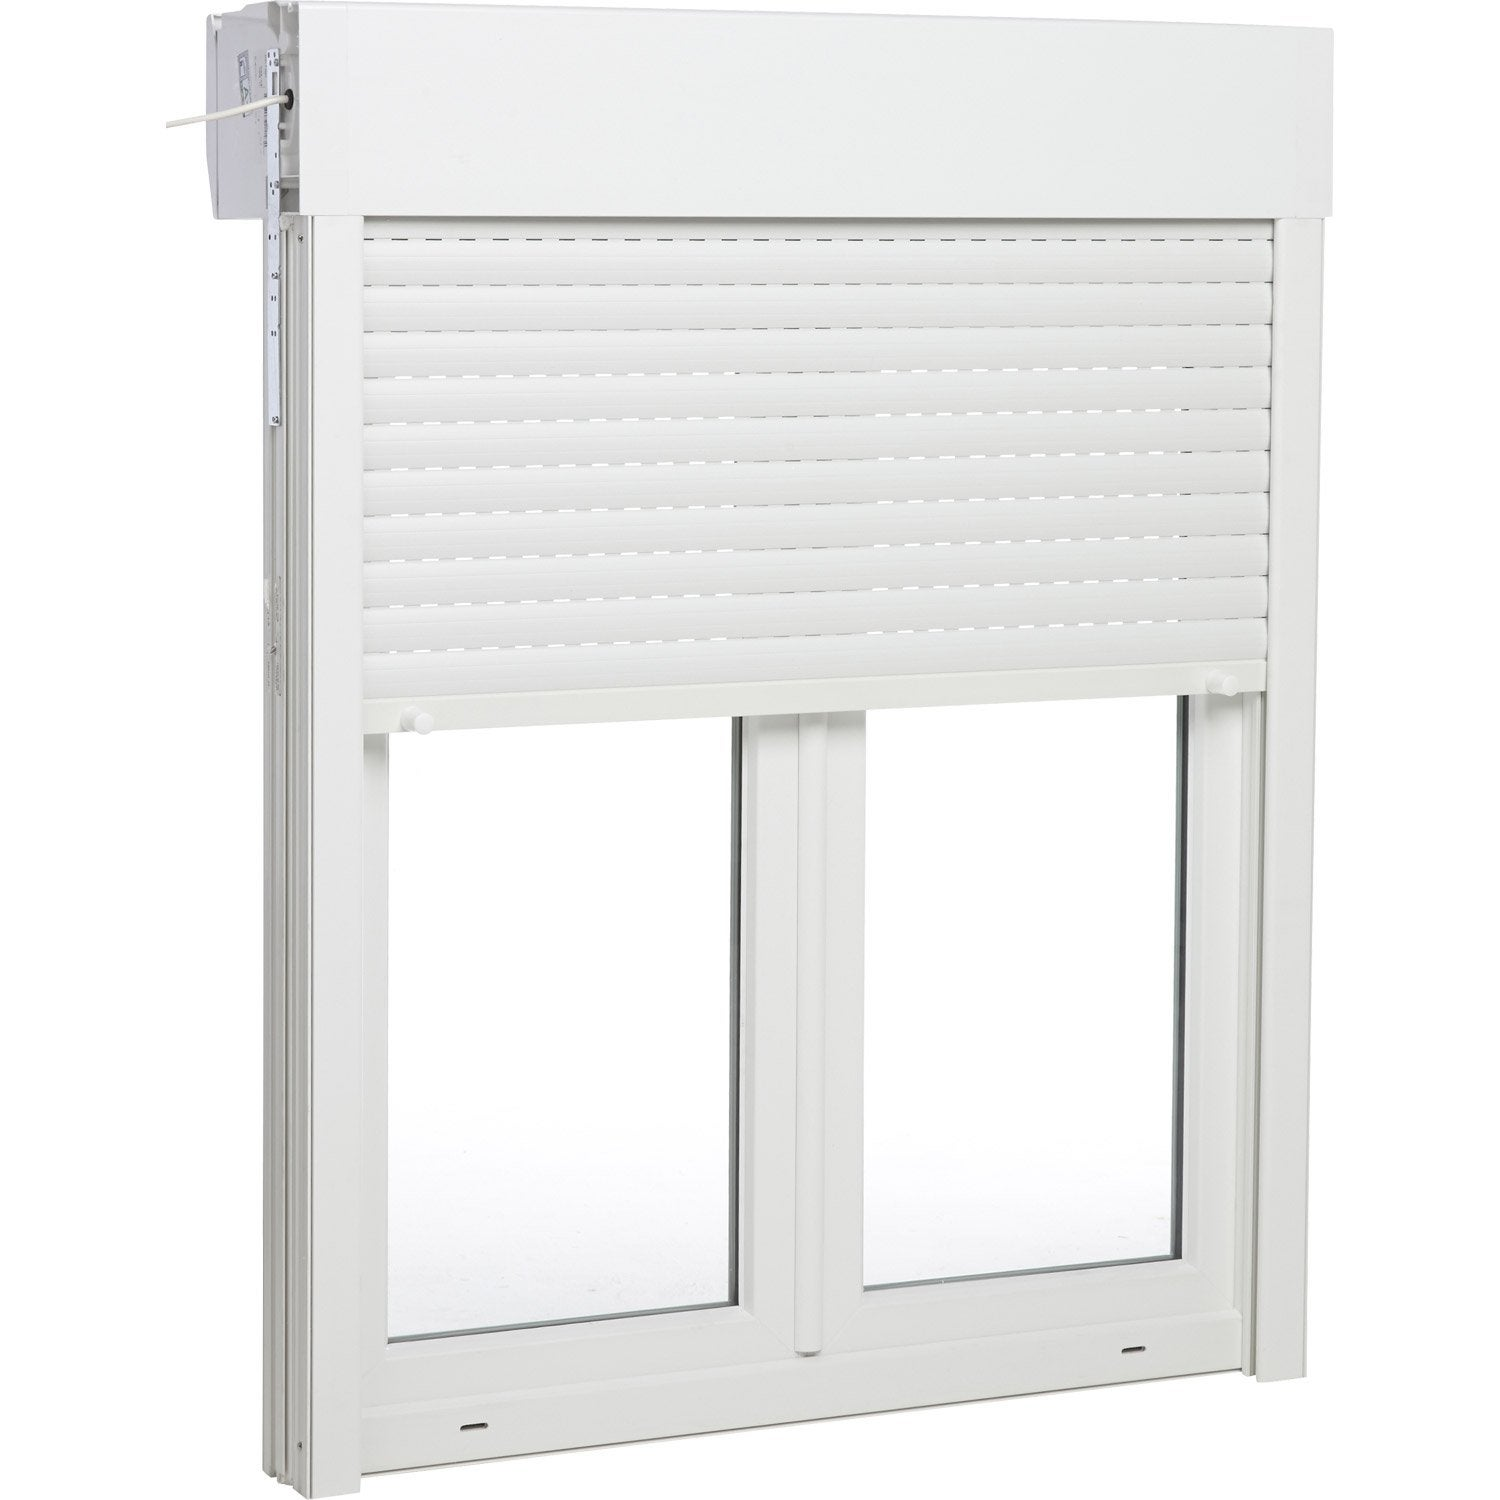 Fenetre Bois Sur Mesure Pologne : Andersen Double Hung Windows